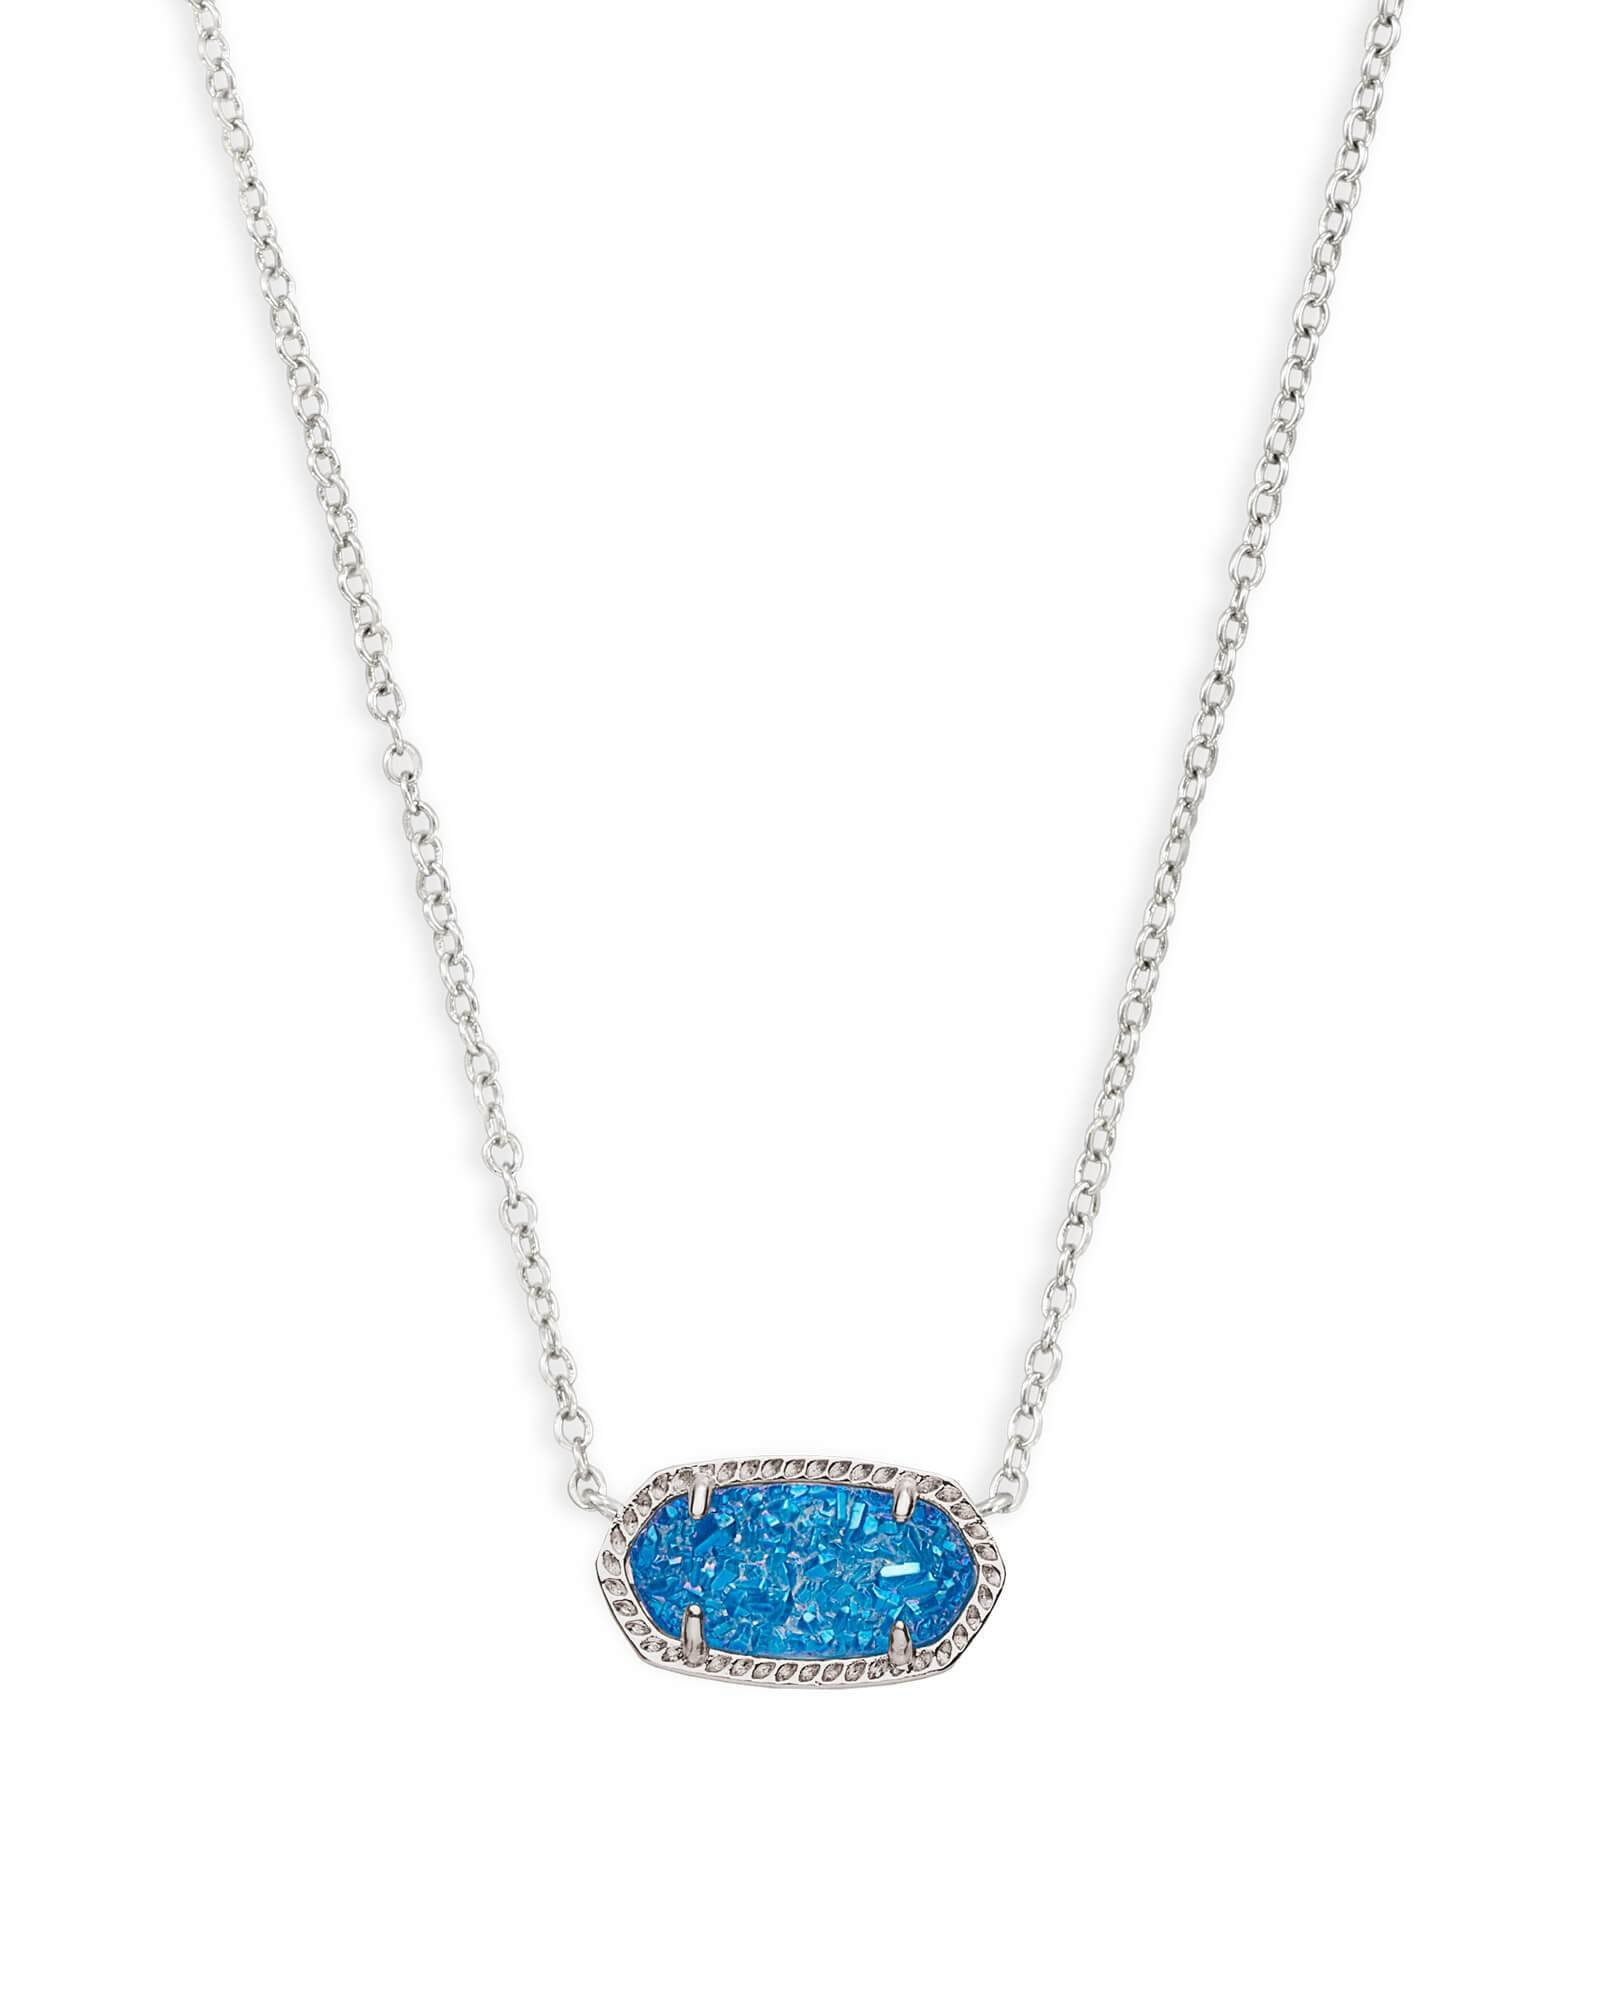 Kendra Scott Signature Elisa Pendant Necklace (Blue)